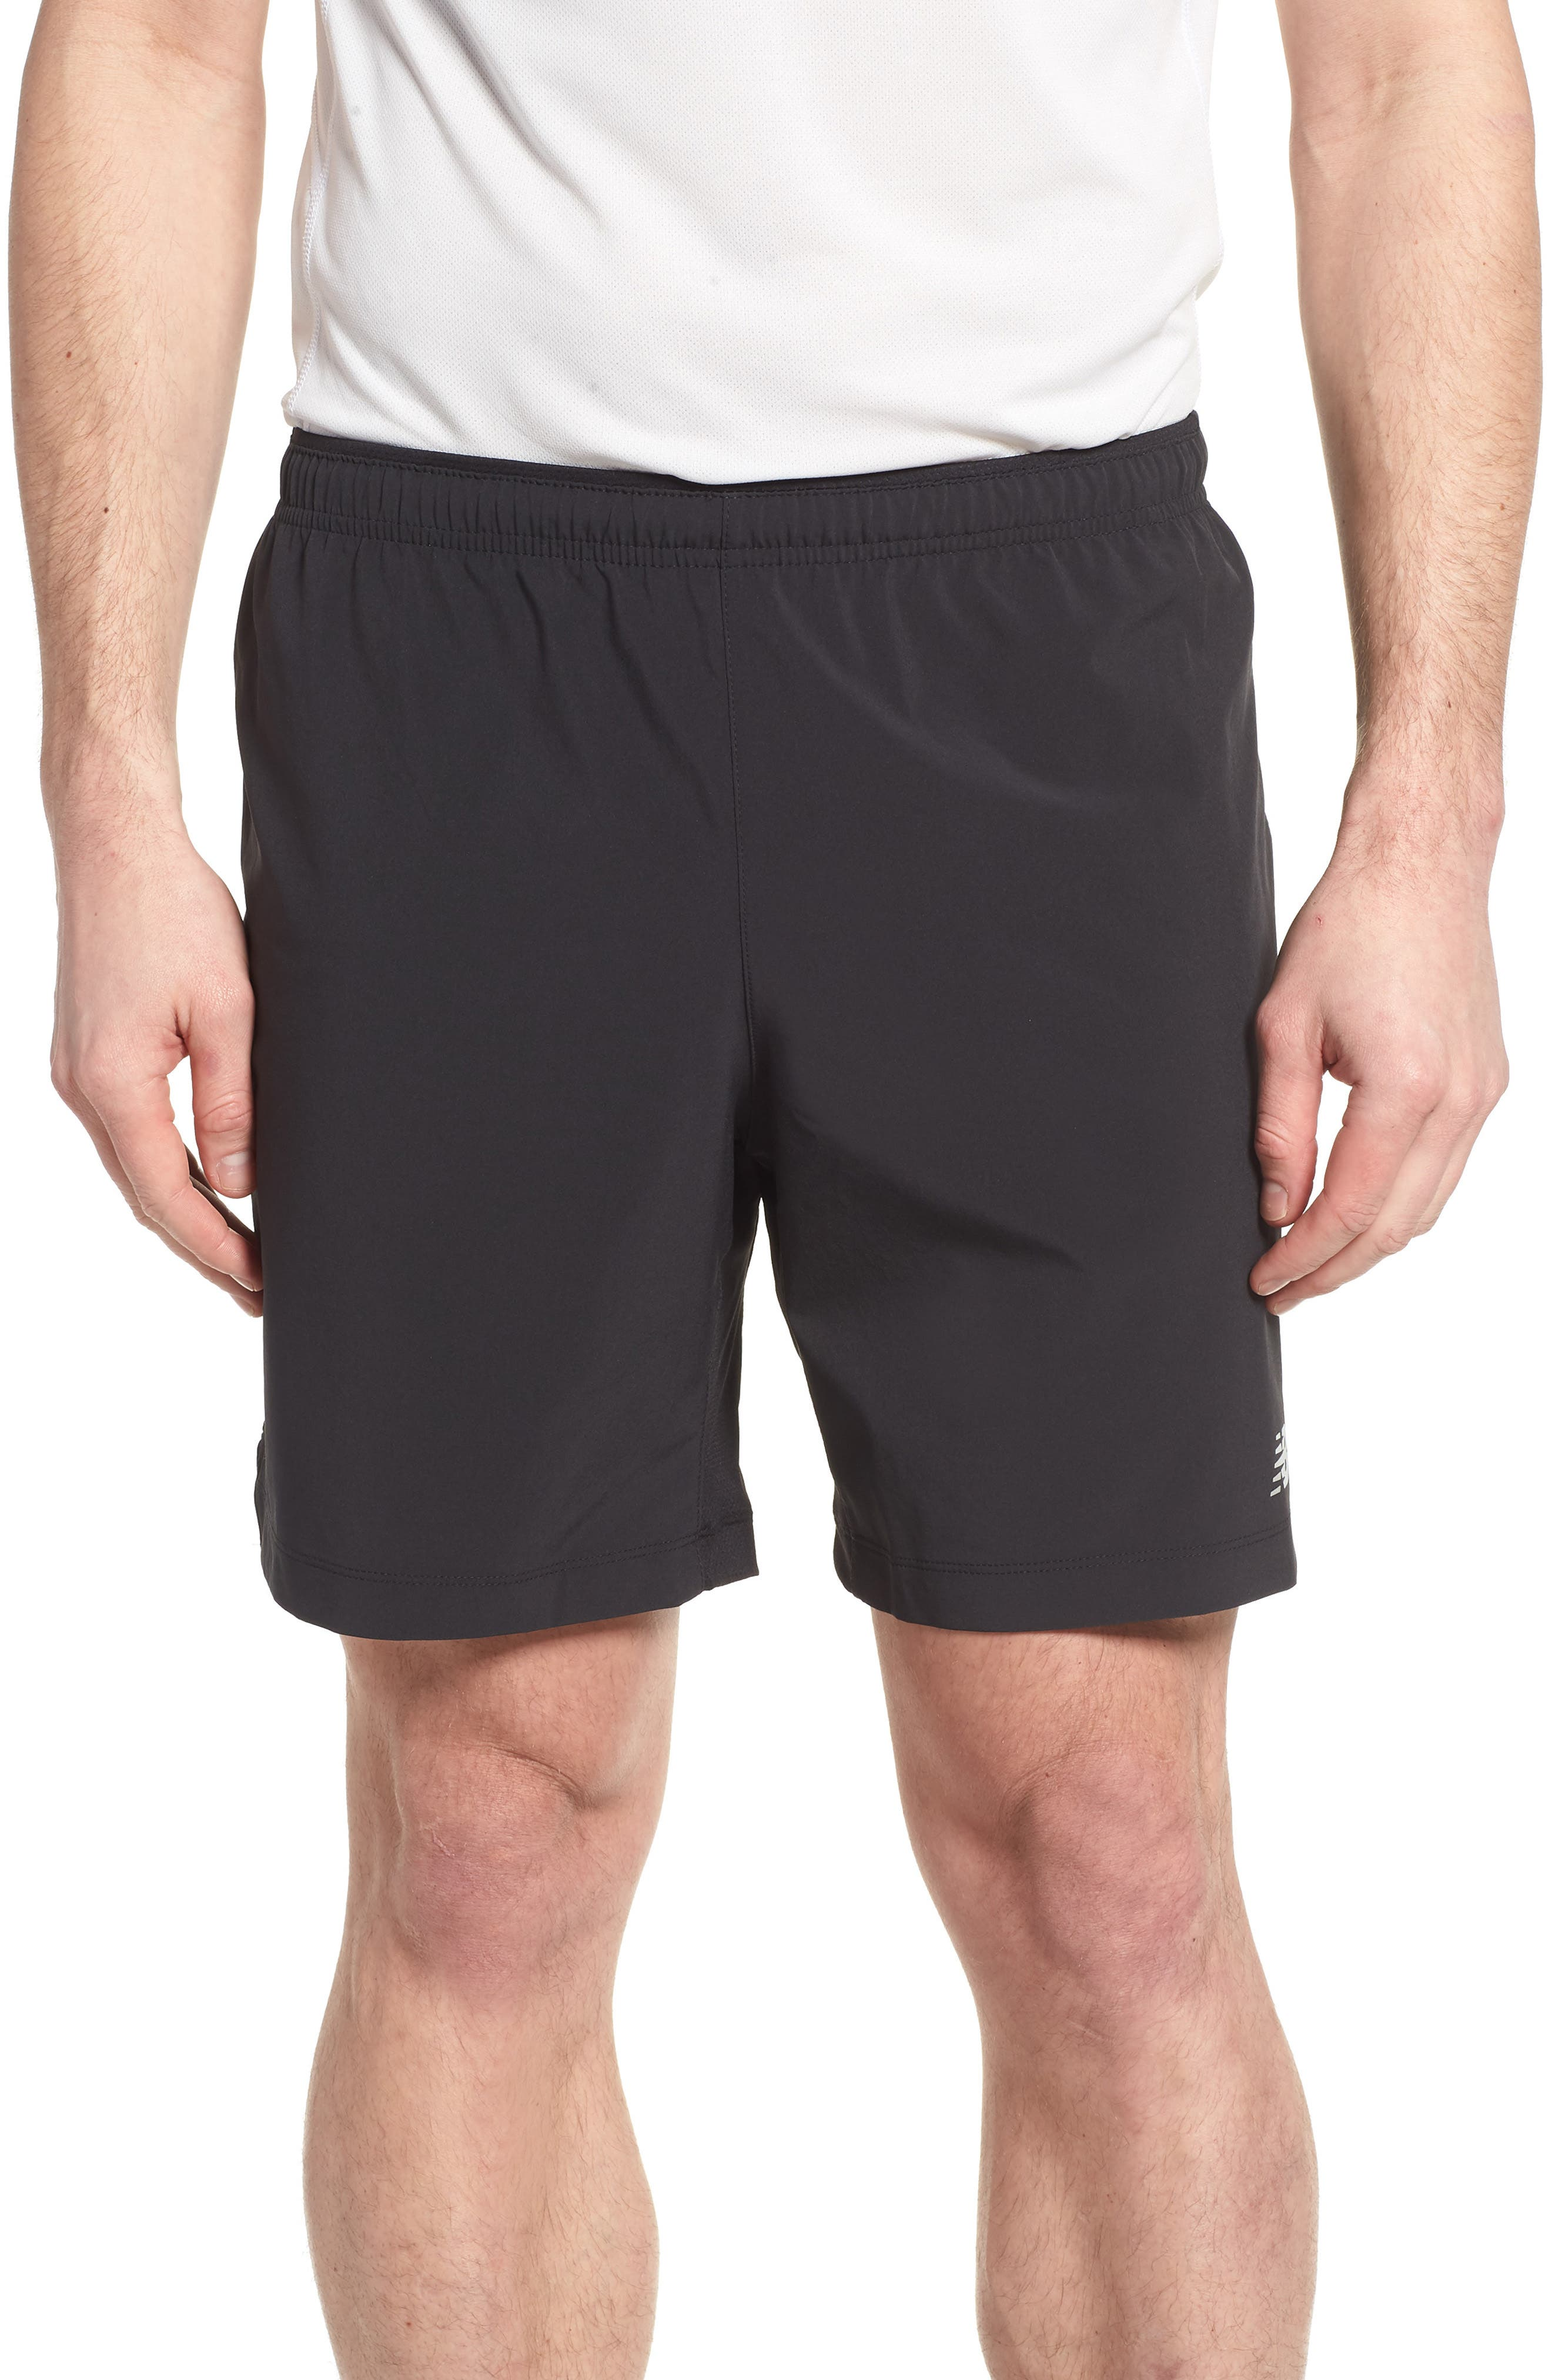 Impact Shorts,                         Main,                         color, Black